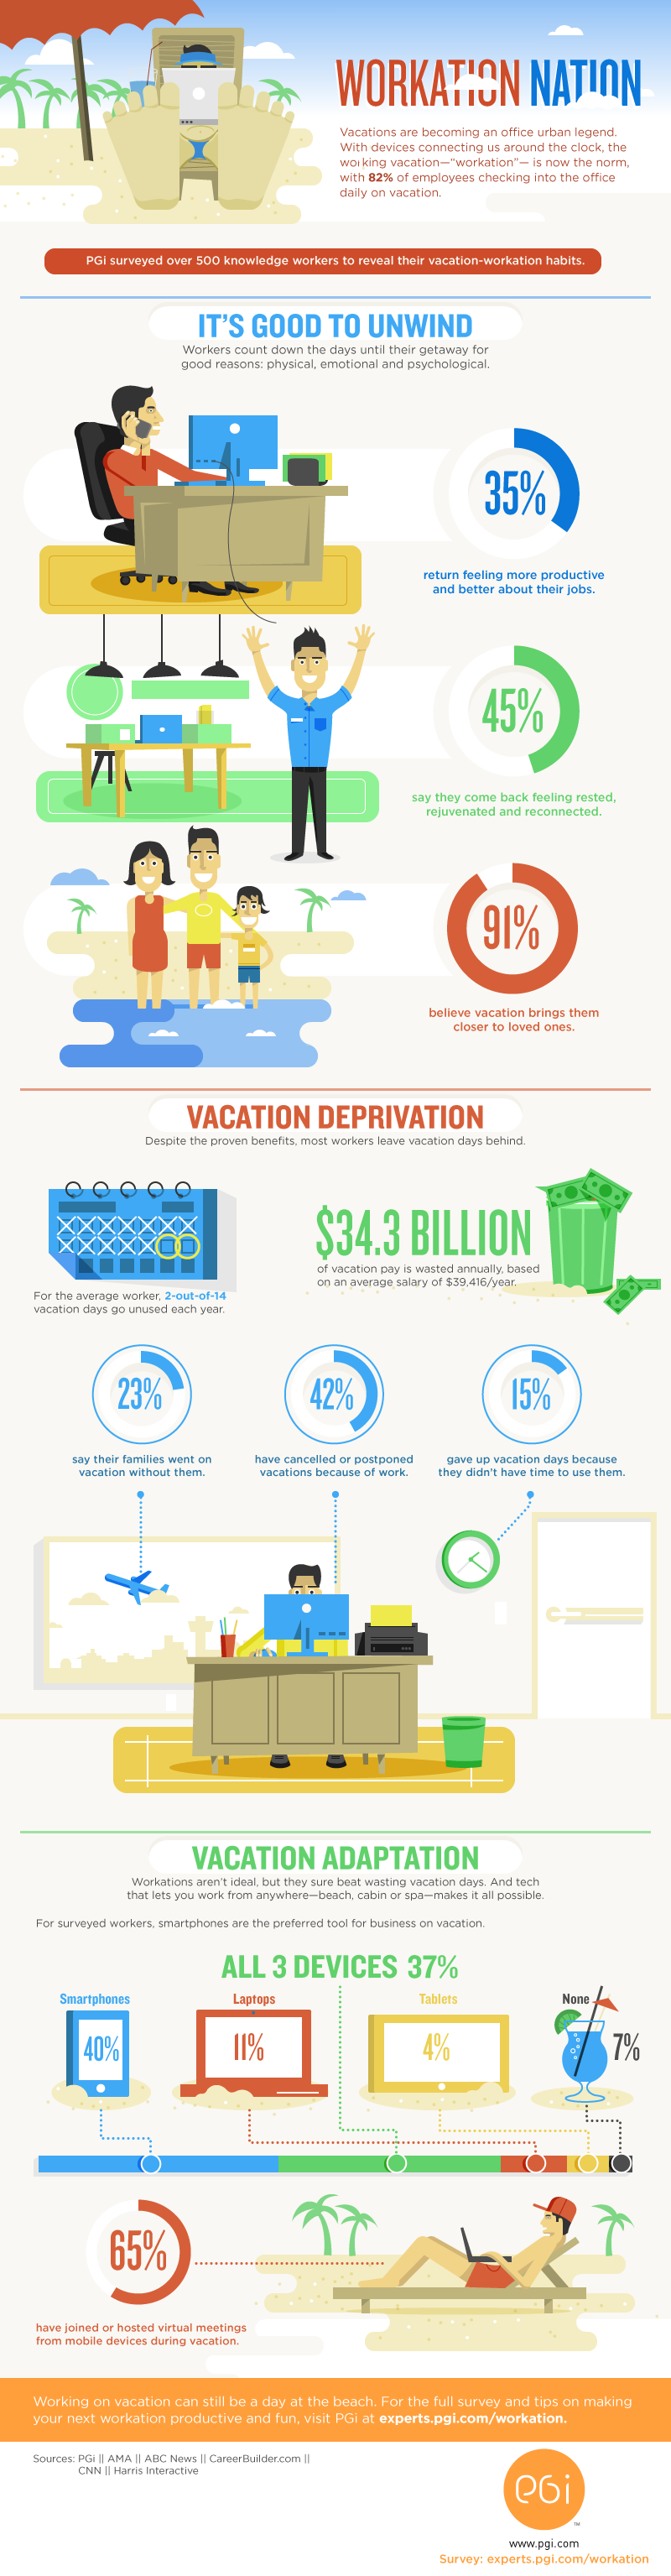 vacation survey infographic